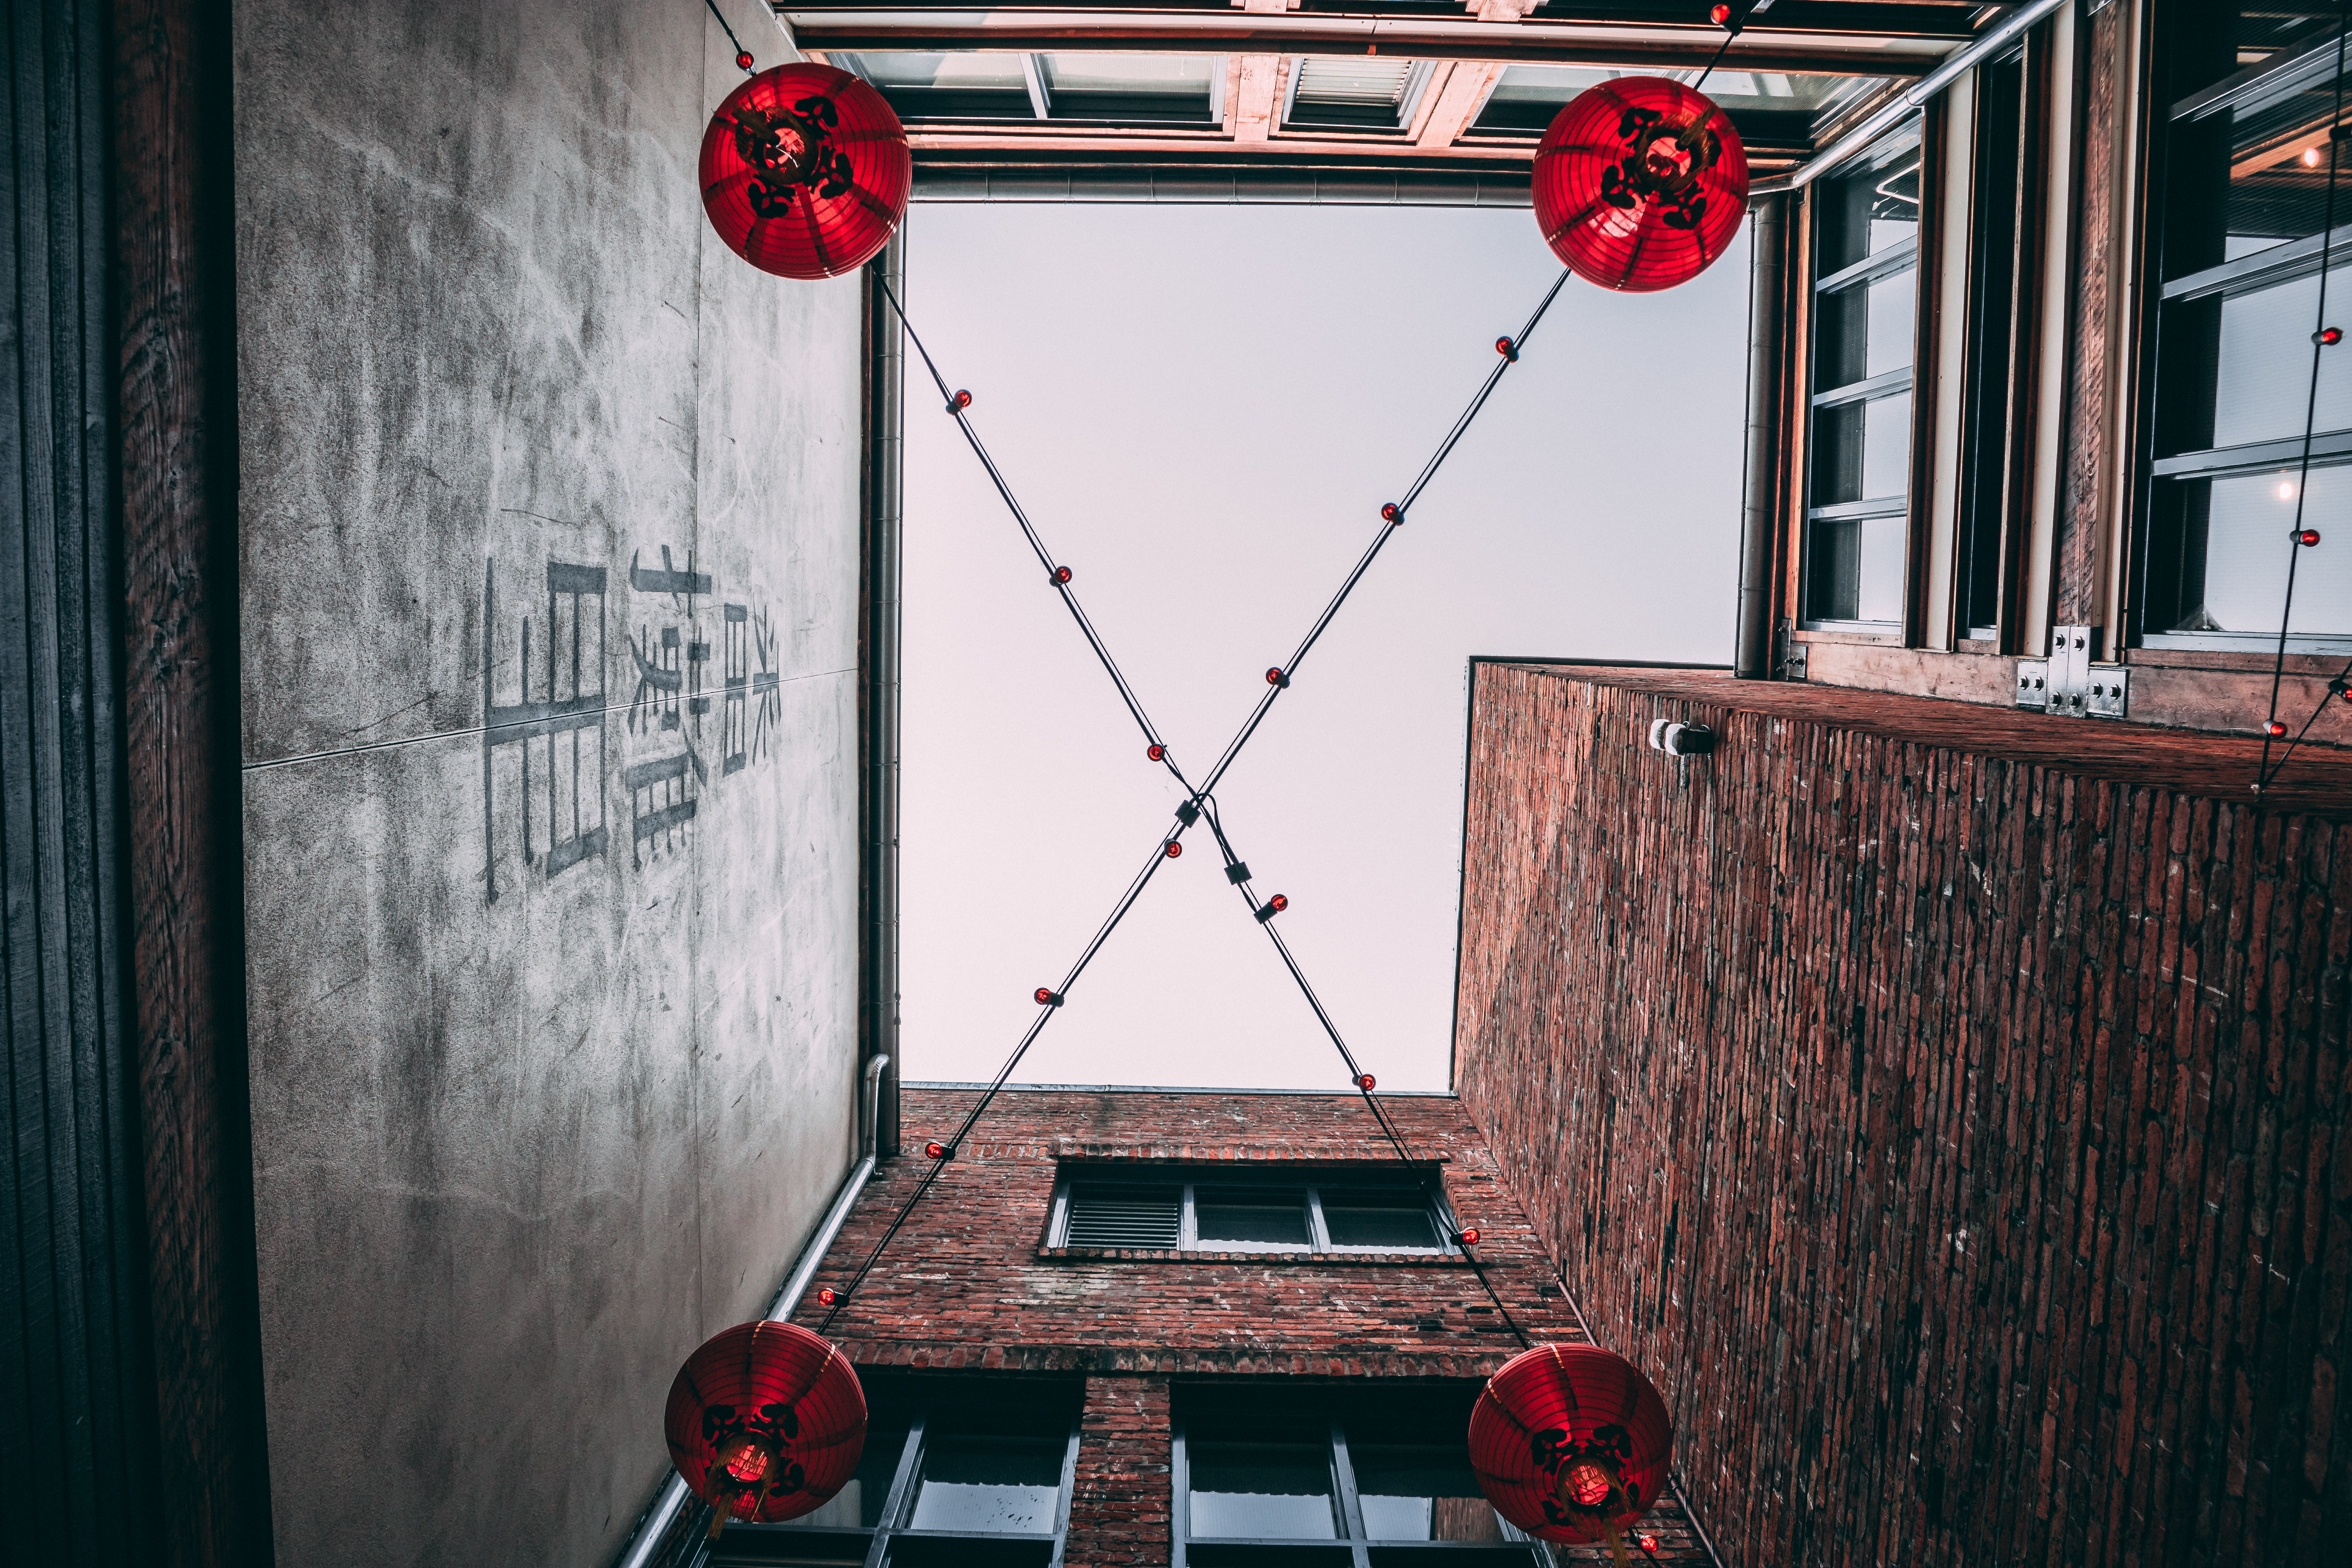 four red paper lanterns near brown concrete building wall during daytime